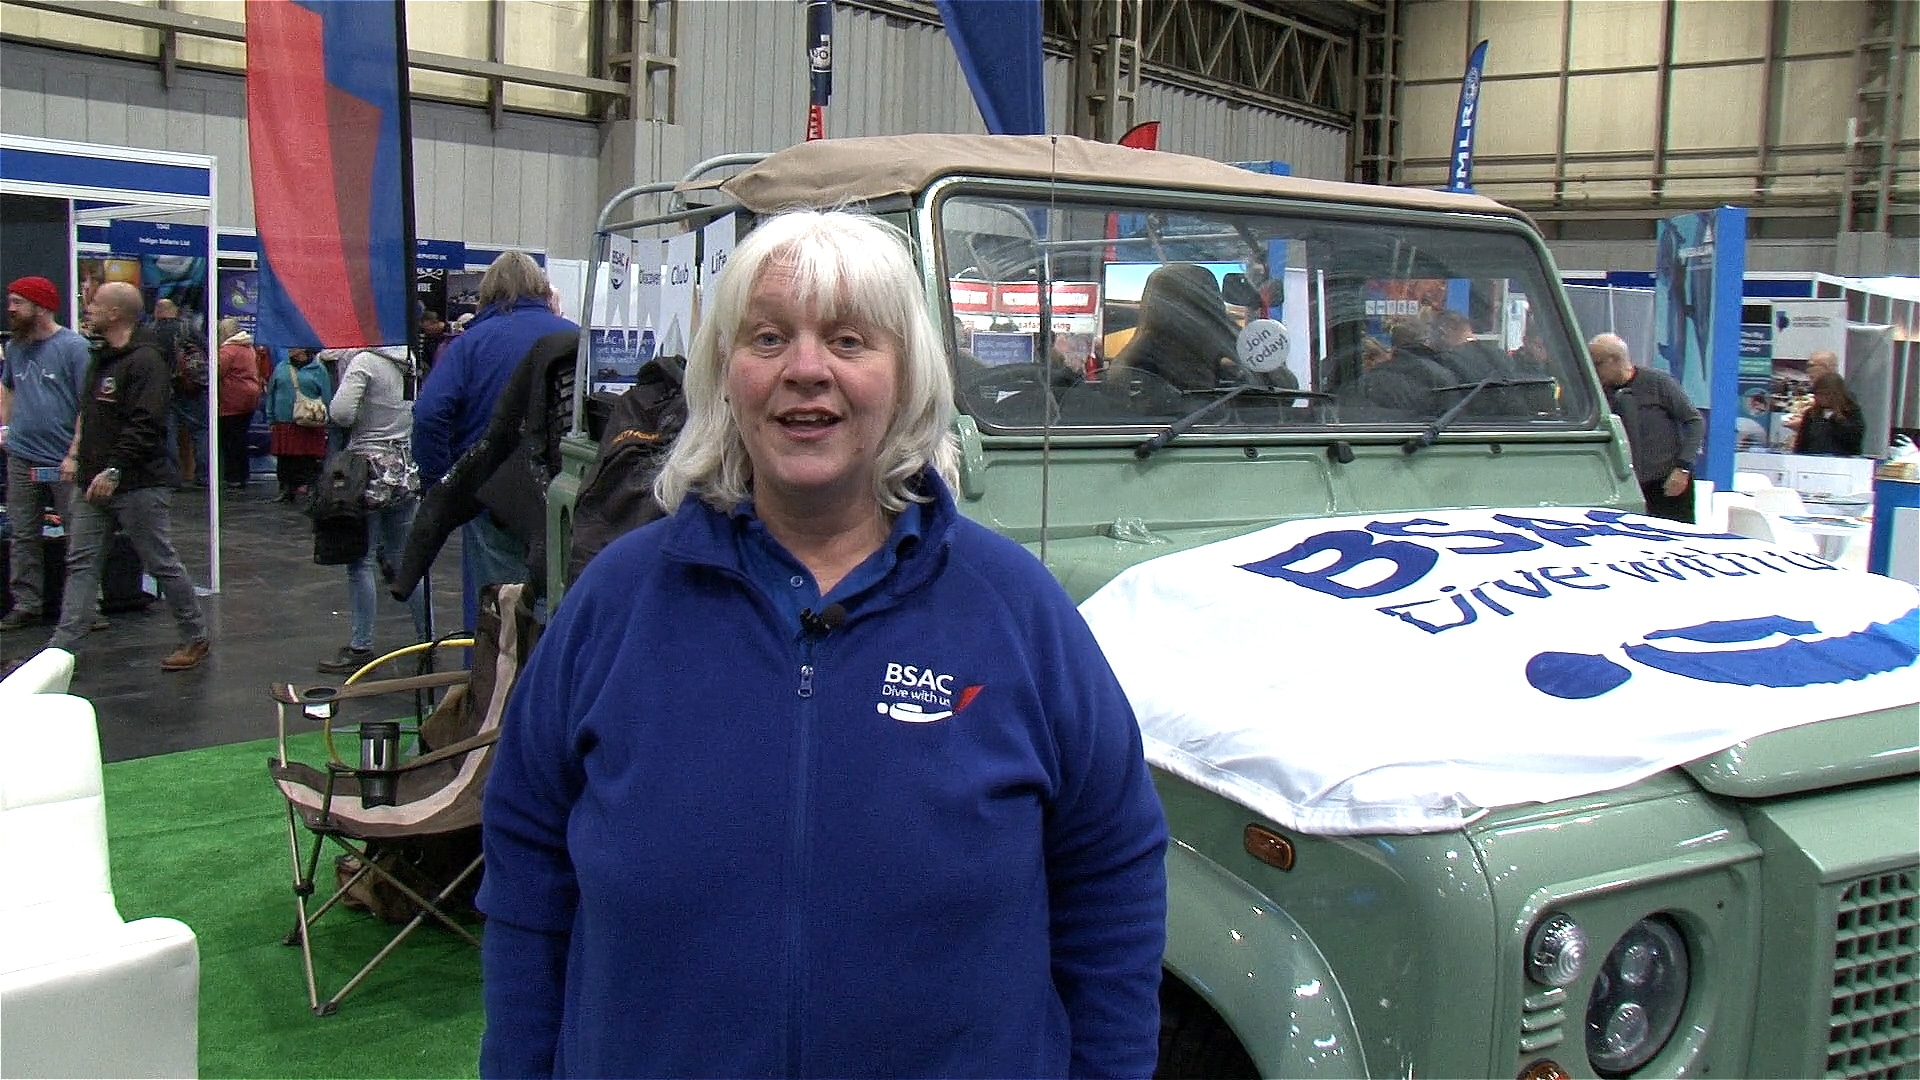 DIVE 2018 Review: BSAC CEO Mary Tetley gives a message to encourage divers to join BSAC (Watch Video)